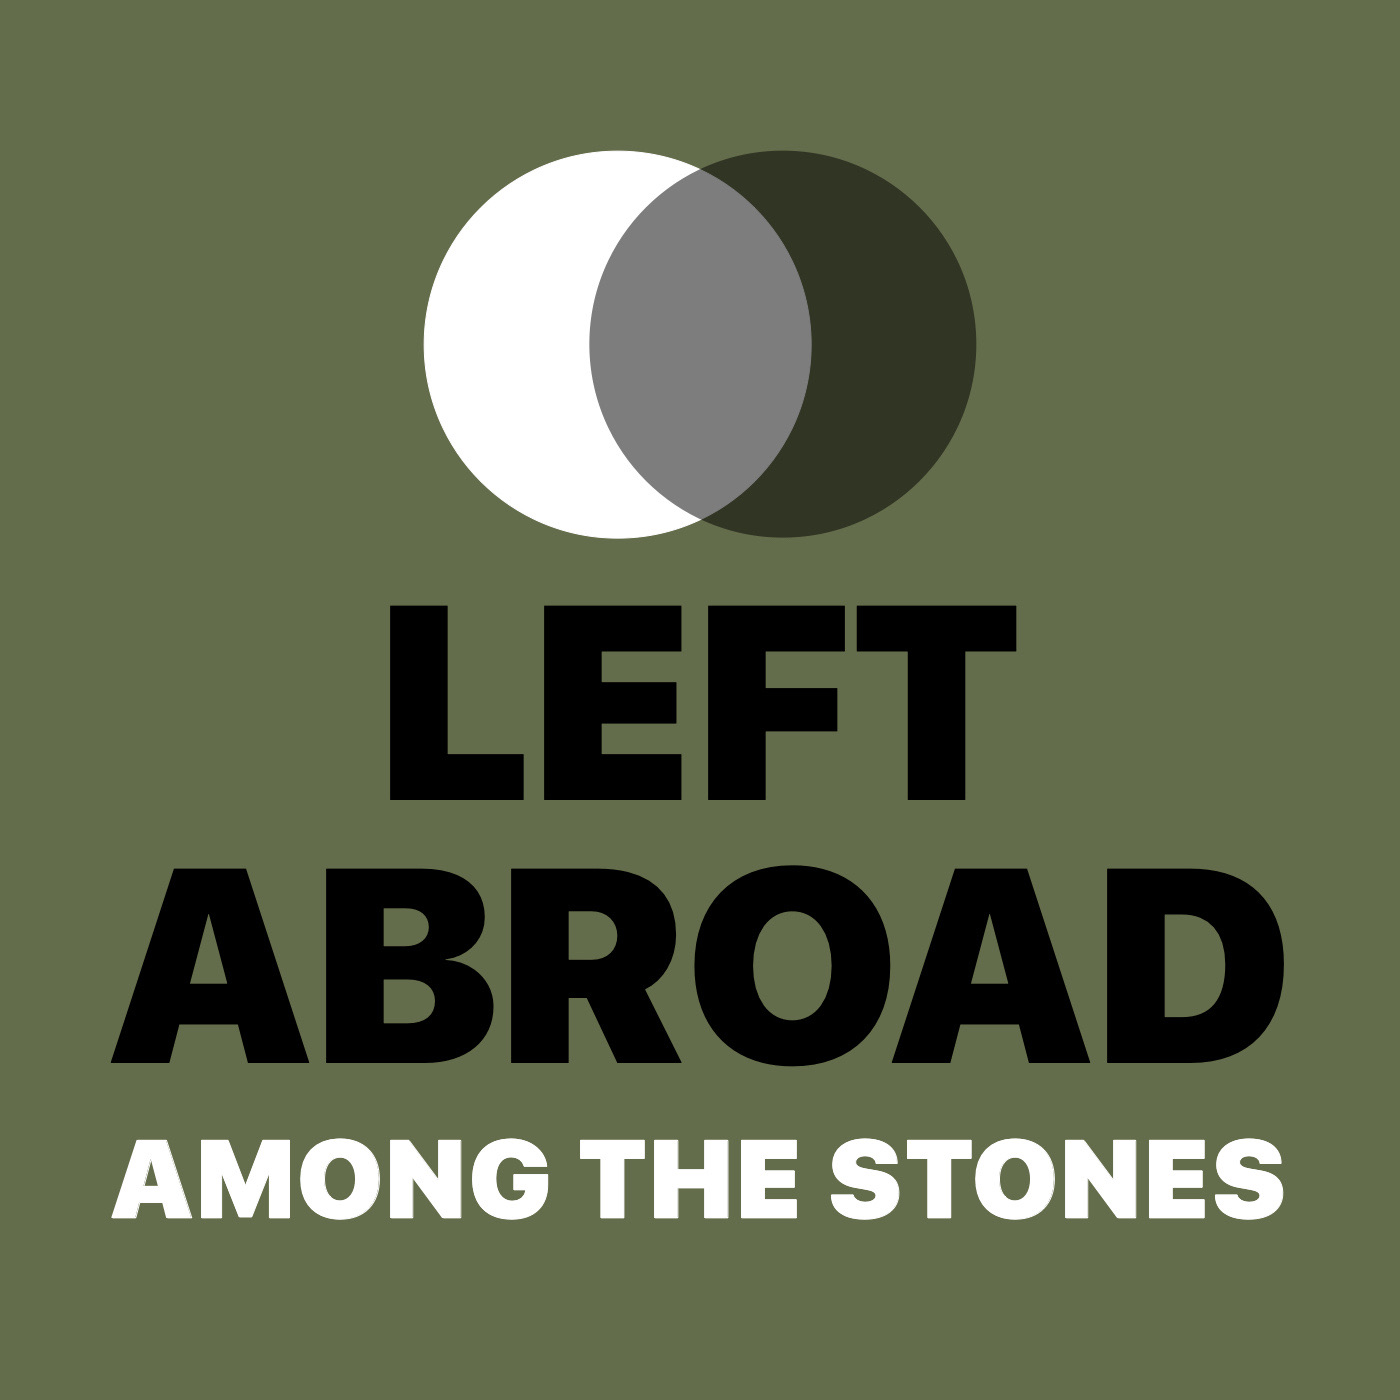 Left Abroad